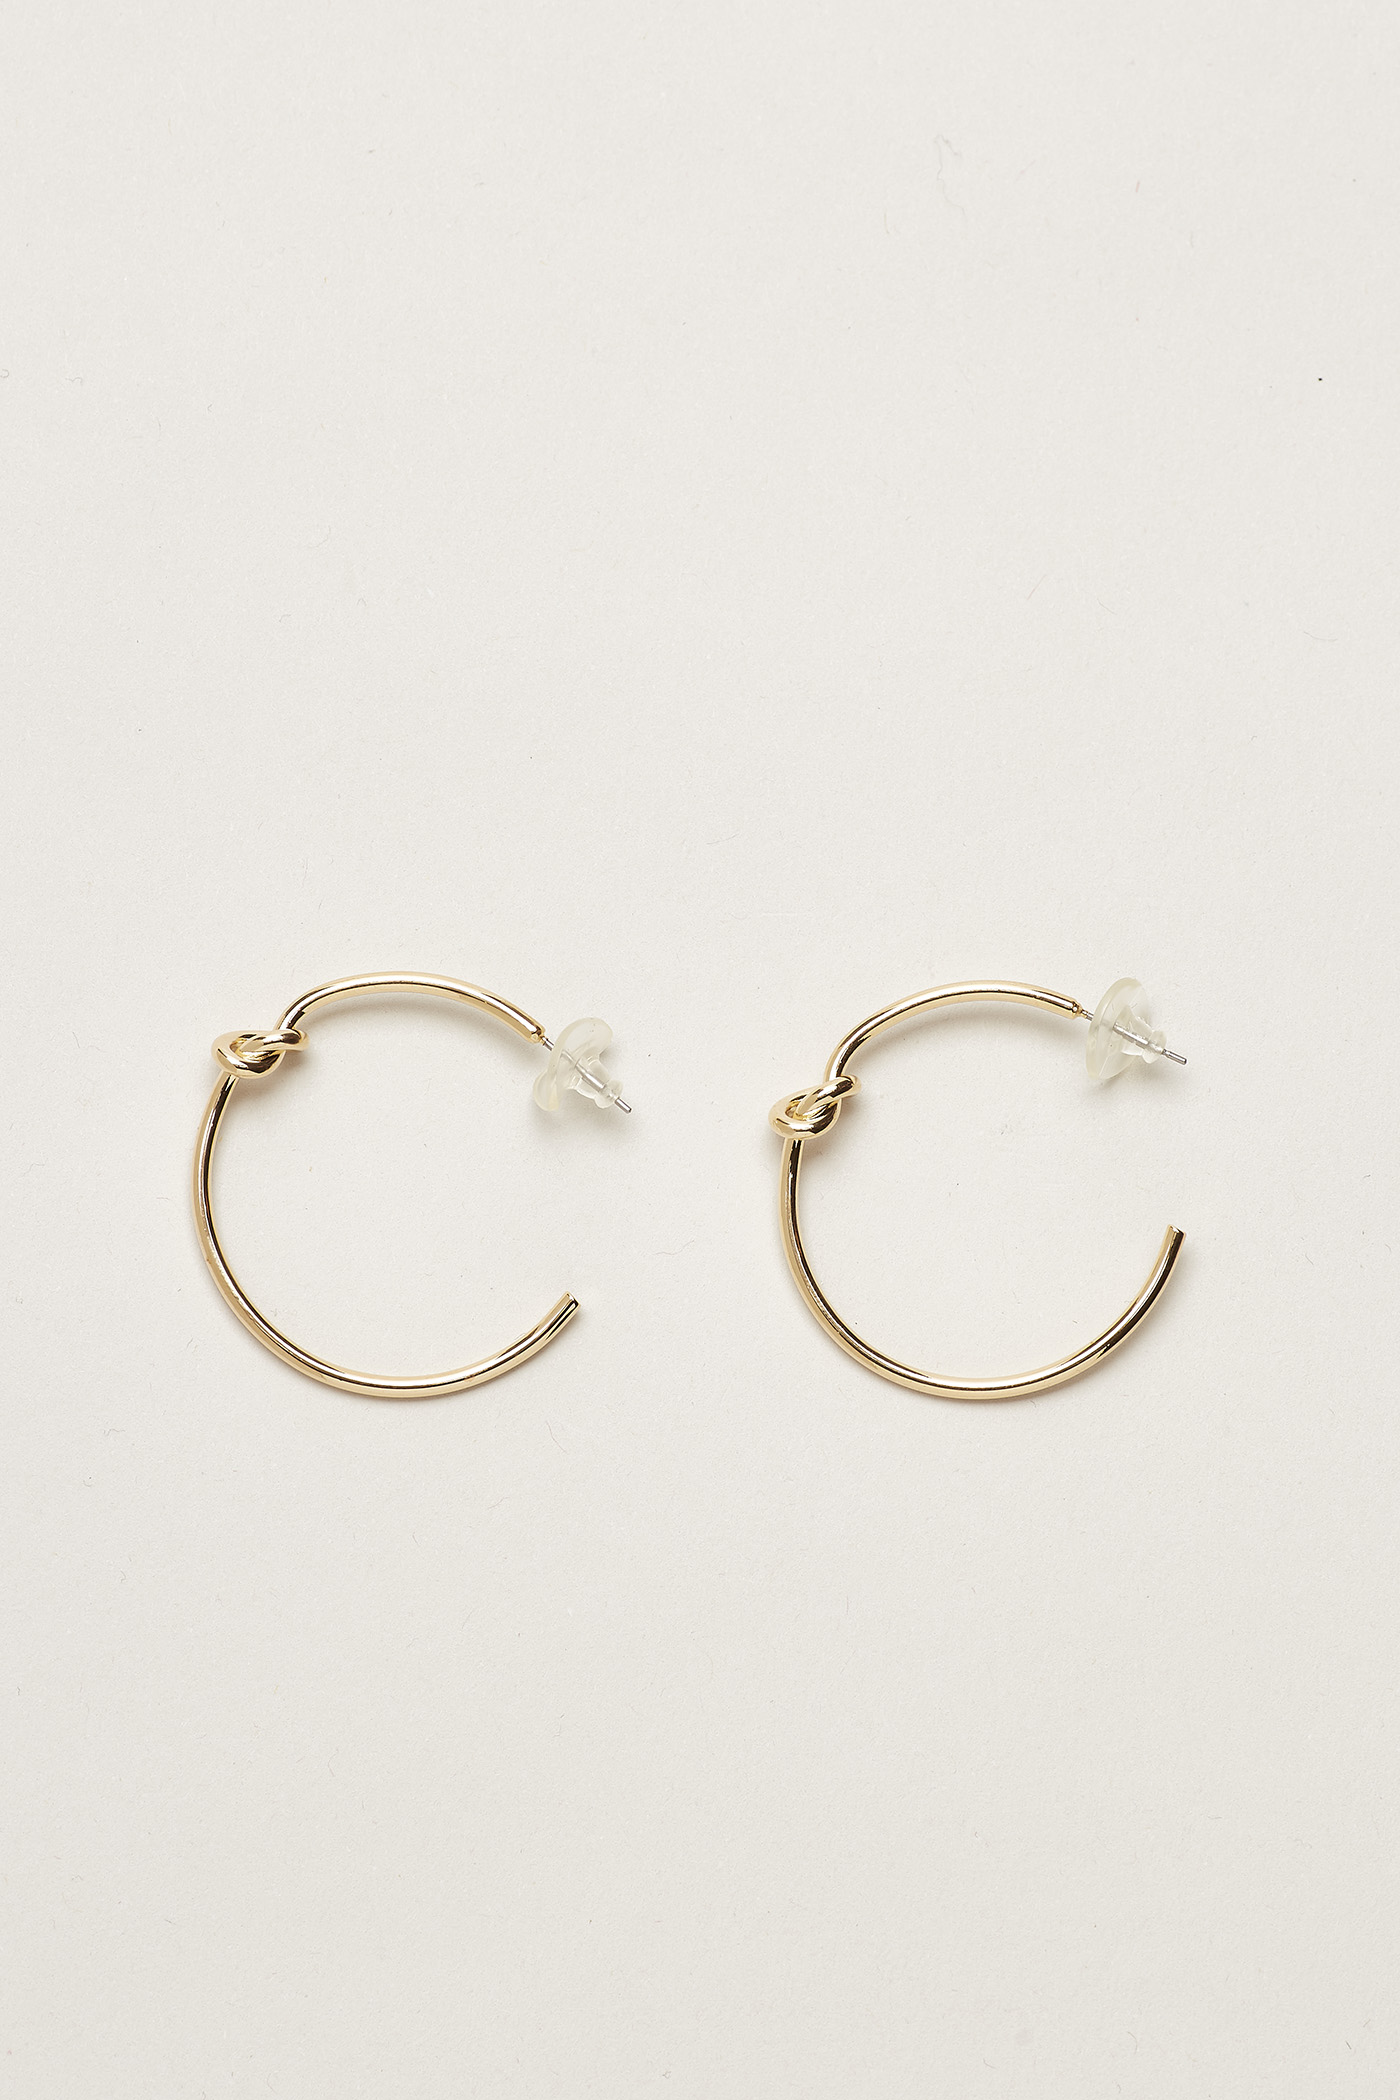 Ylva Knot Hoop Earrings